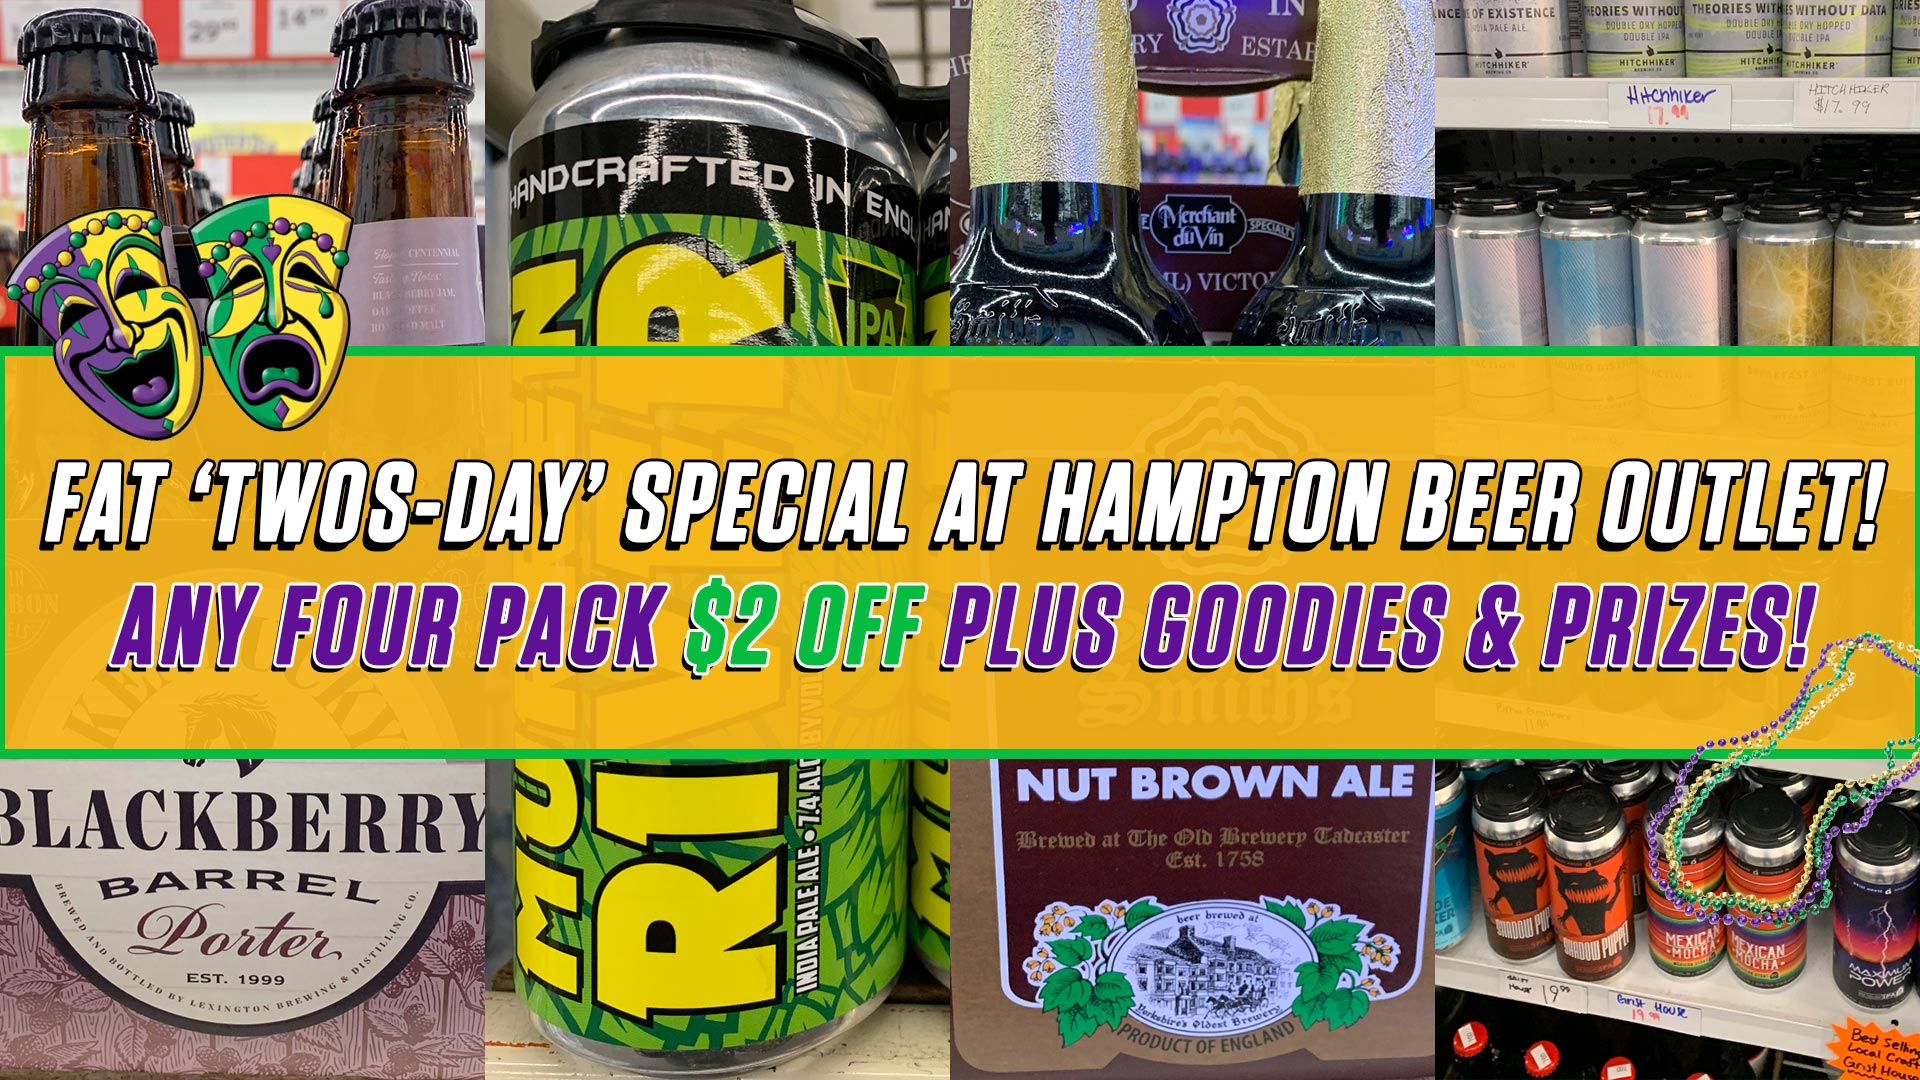 fat-twos-day-promo-hampton-beer-outlet